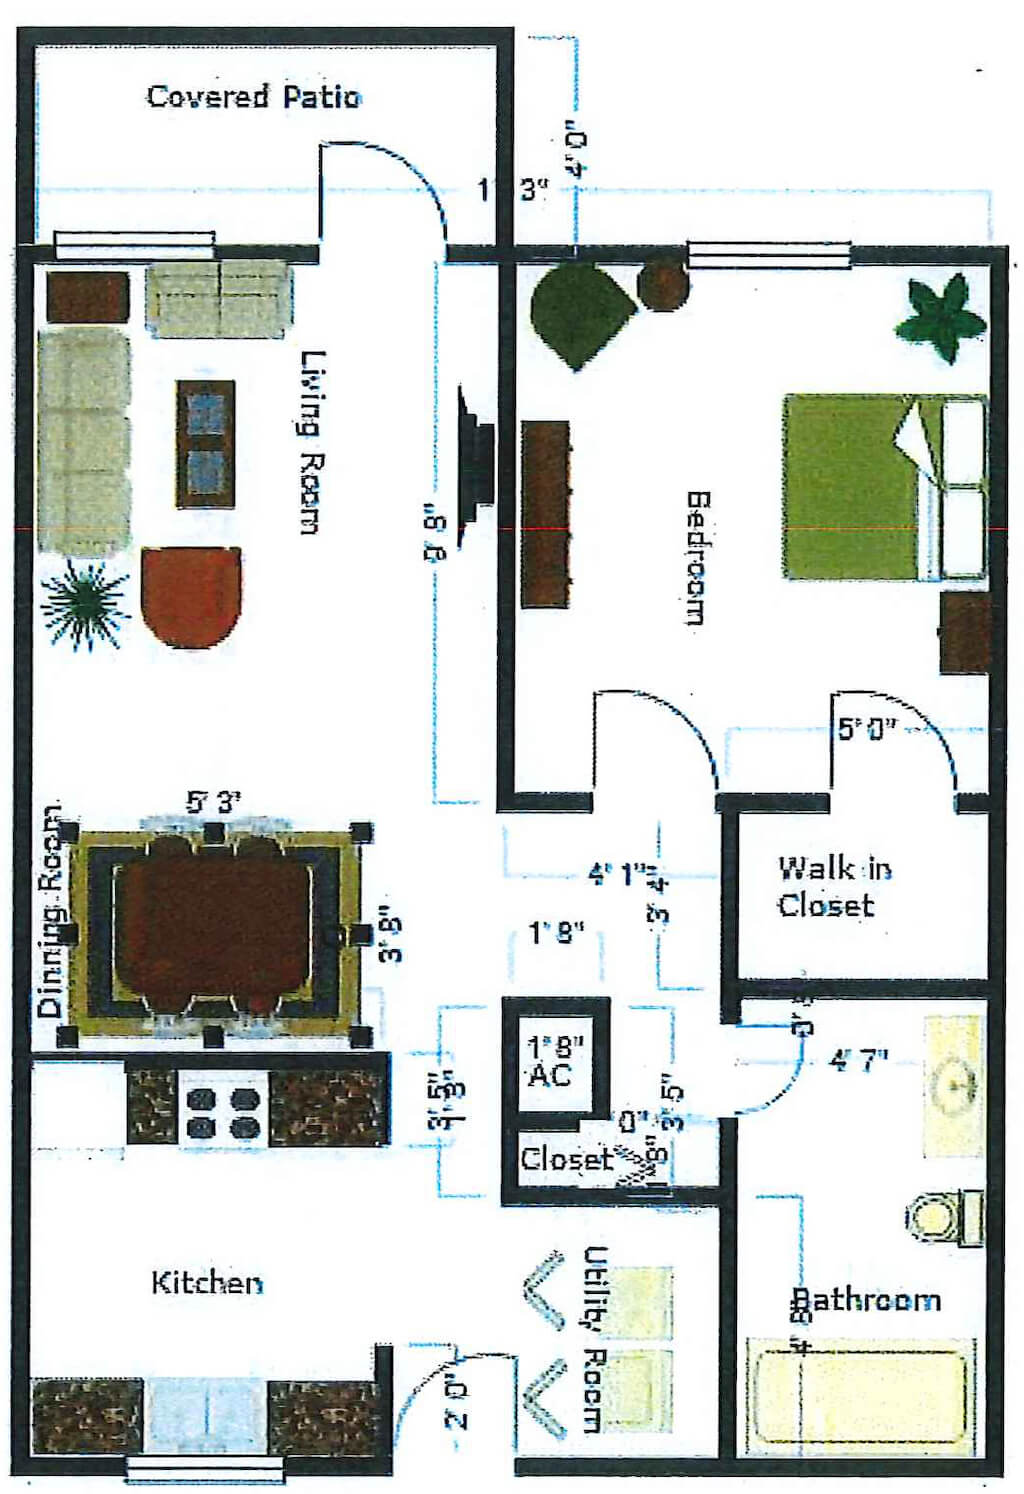 A Cottage floor plan image